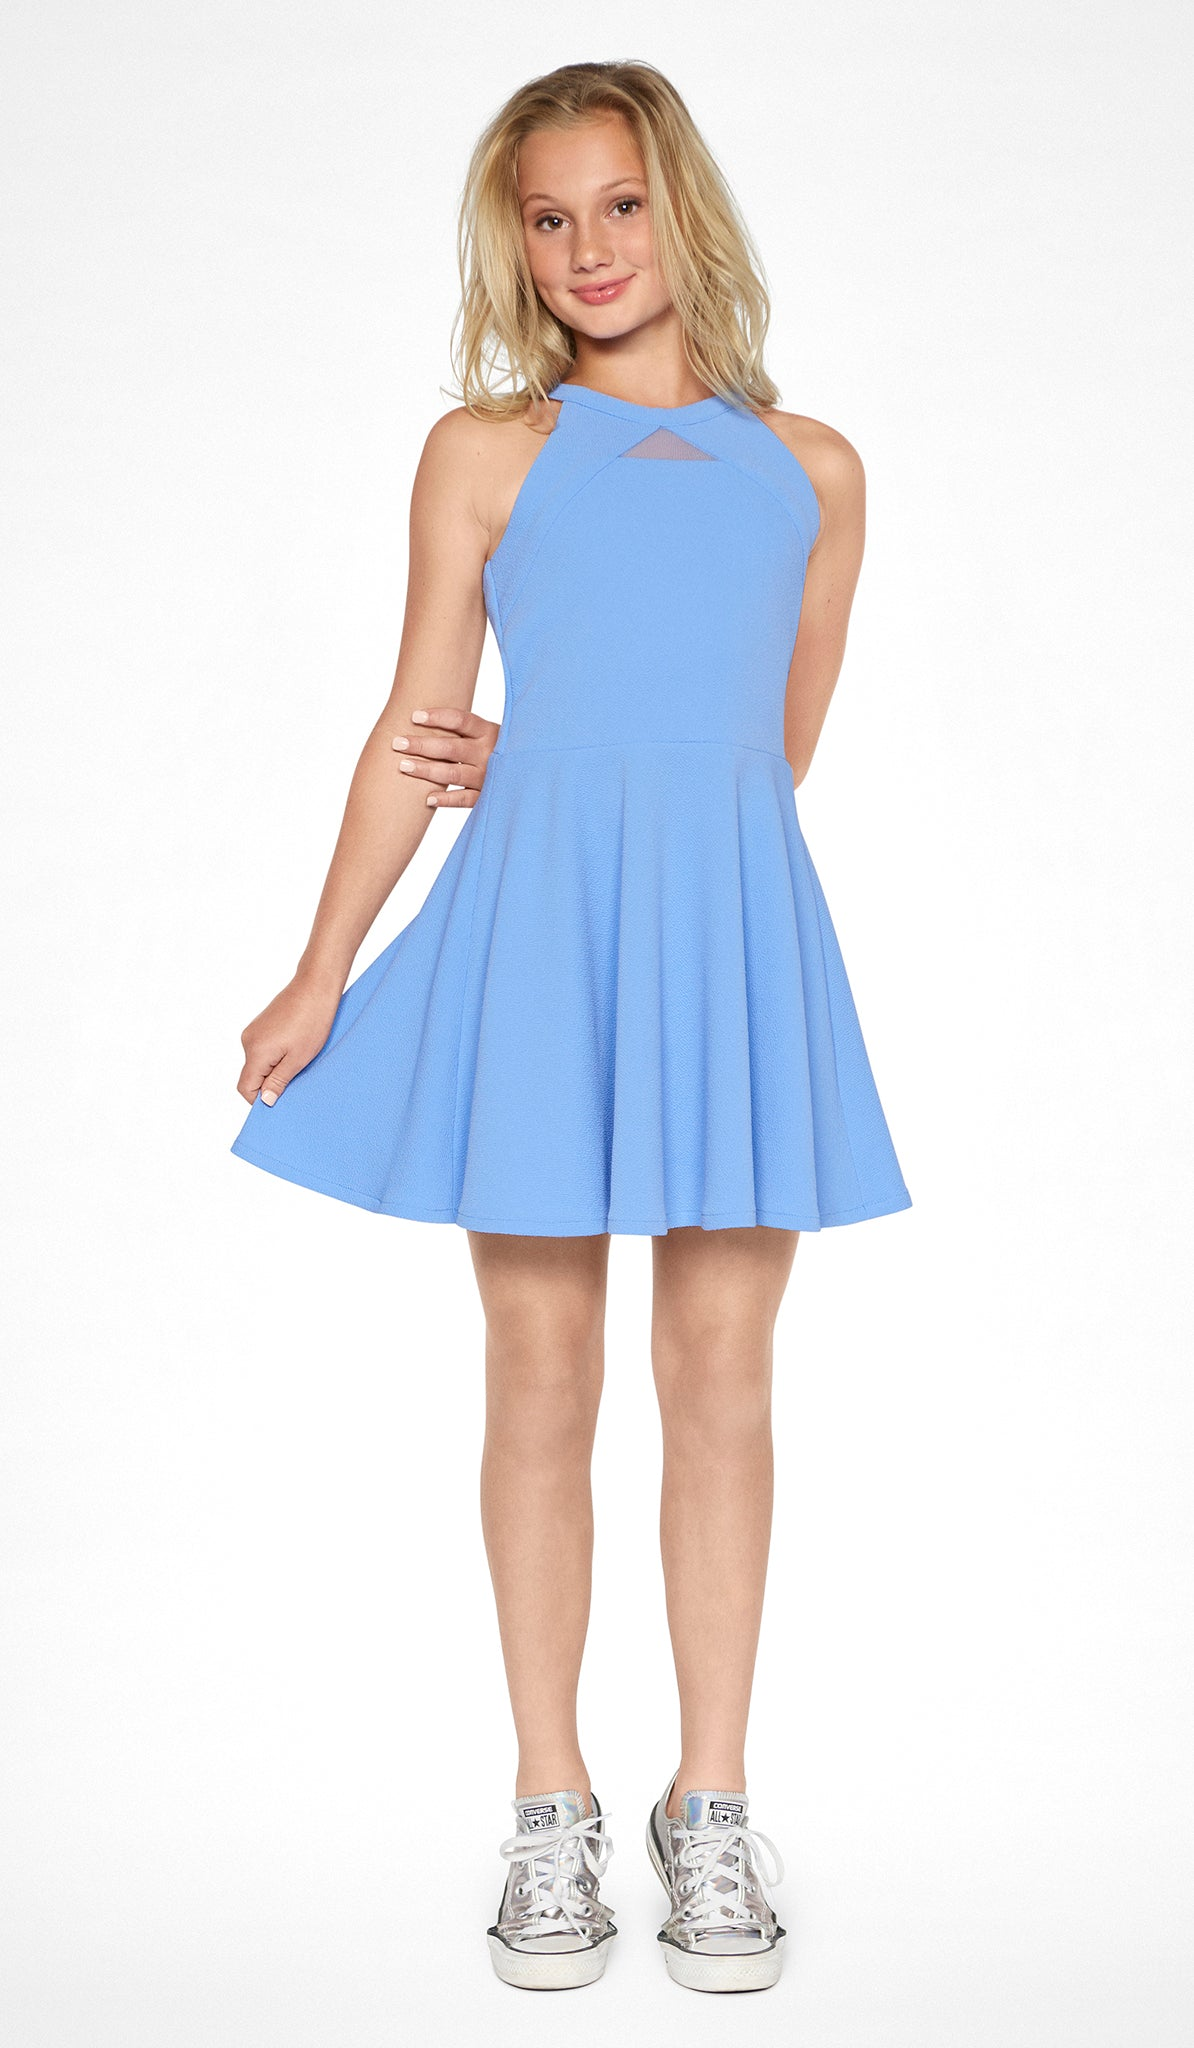 Periwinkle textured knit fit and flare dress with self-colored blocking and mesh detail at neck Sally Miller The Elise Dress